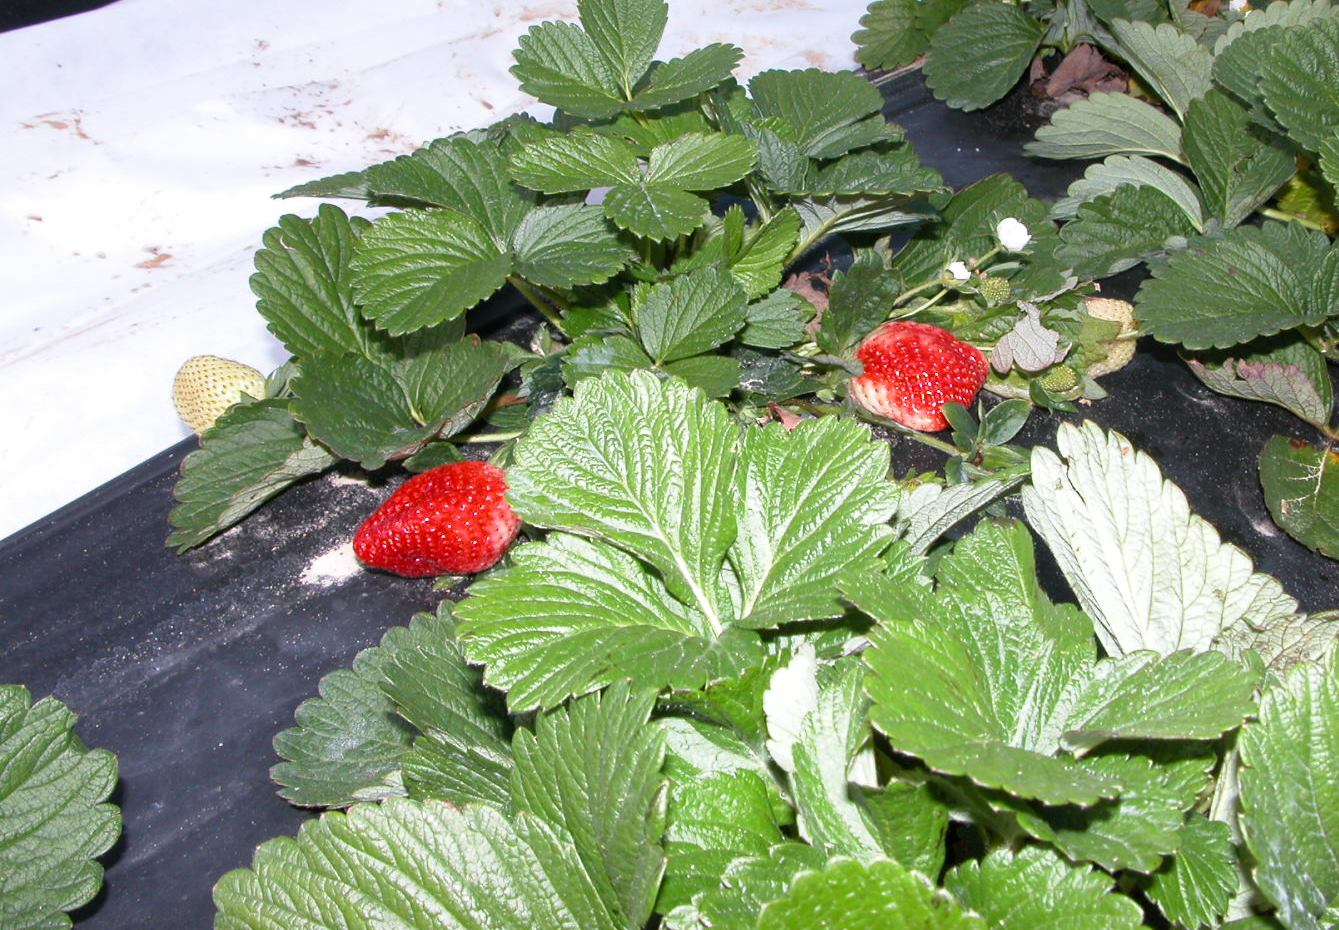 Strawberry plants with ripe strawberries.JPG thumbnail